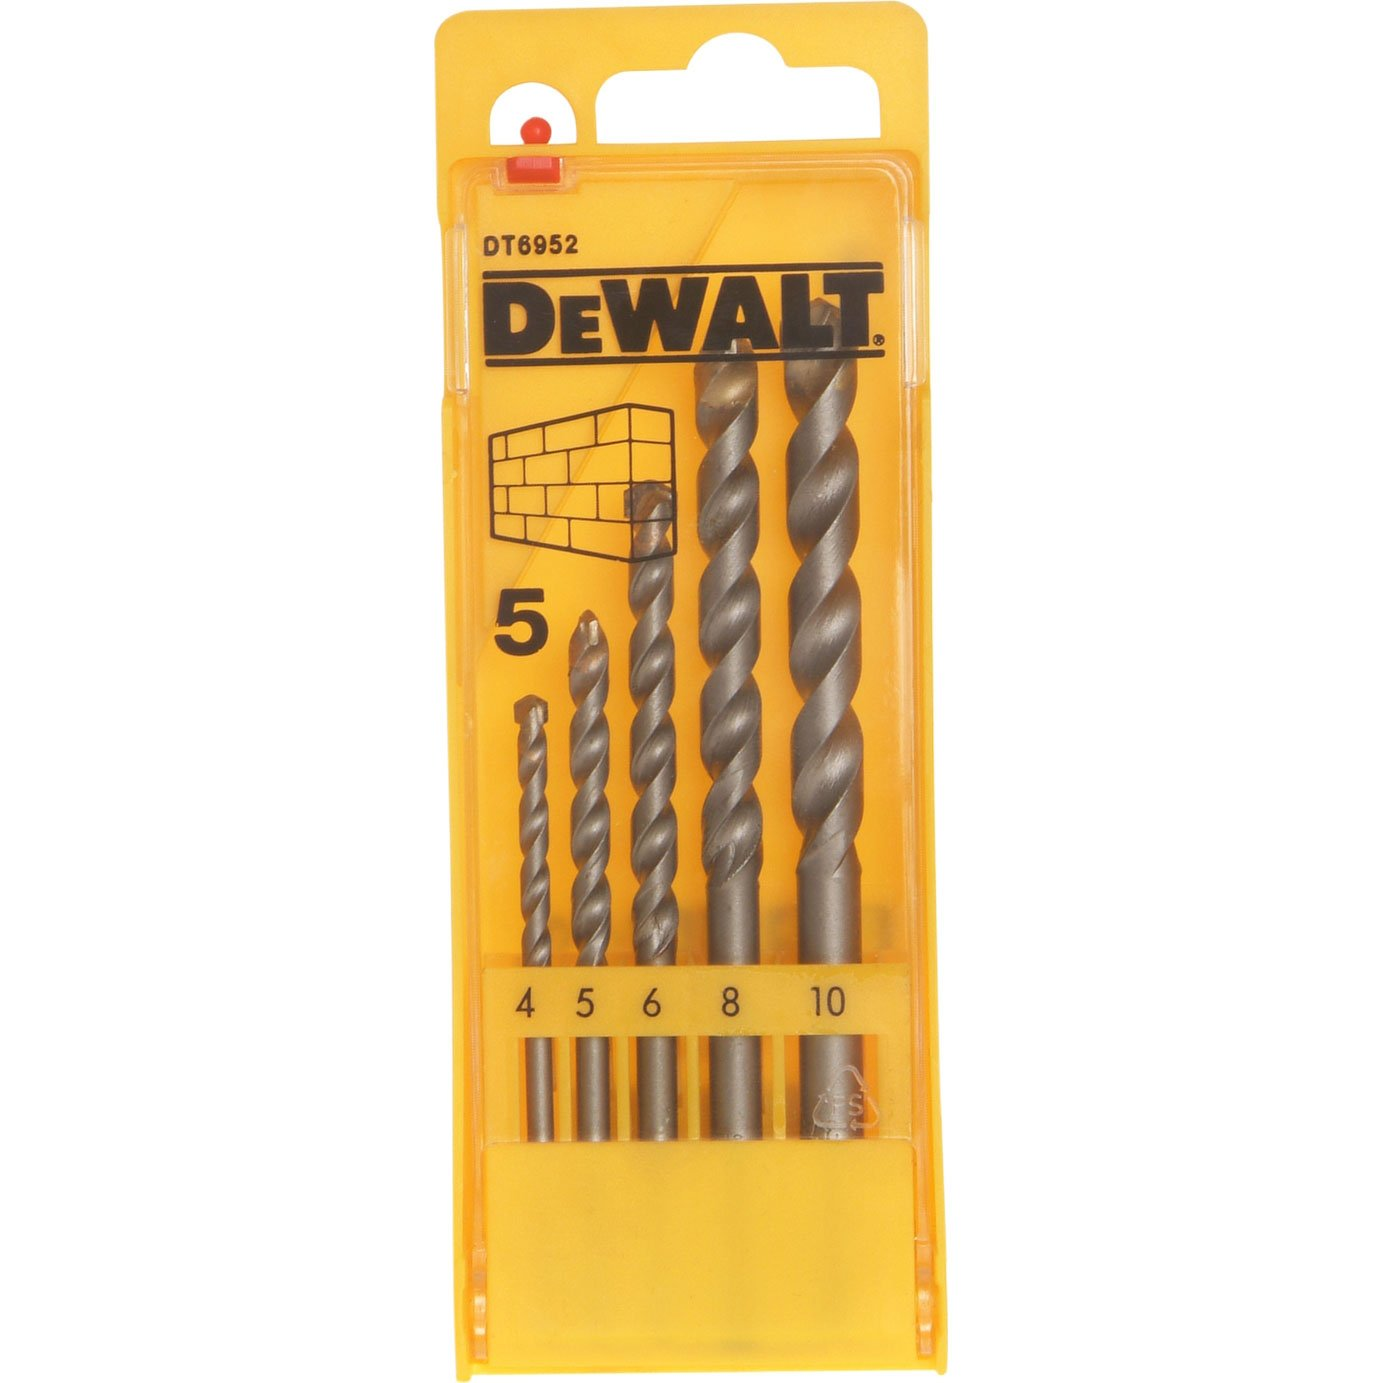 Elite Choice DeWalt 5 Piece Masonry Drill Bit Set 4 - 10mm [Multi Set] - Min 3yr Warranty Dewalt GB